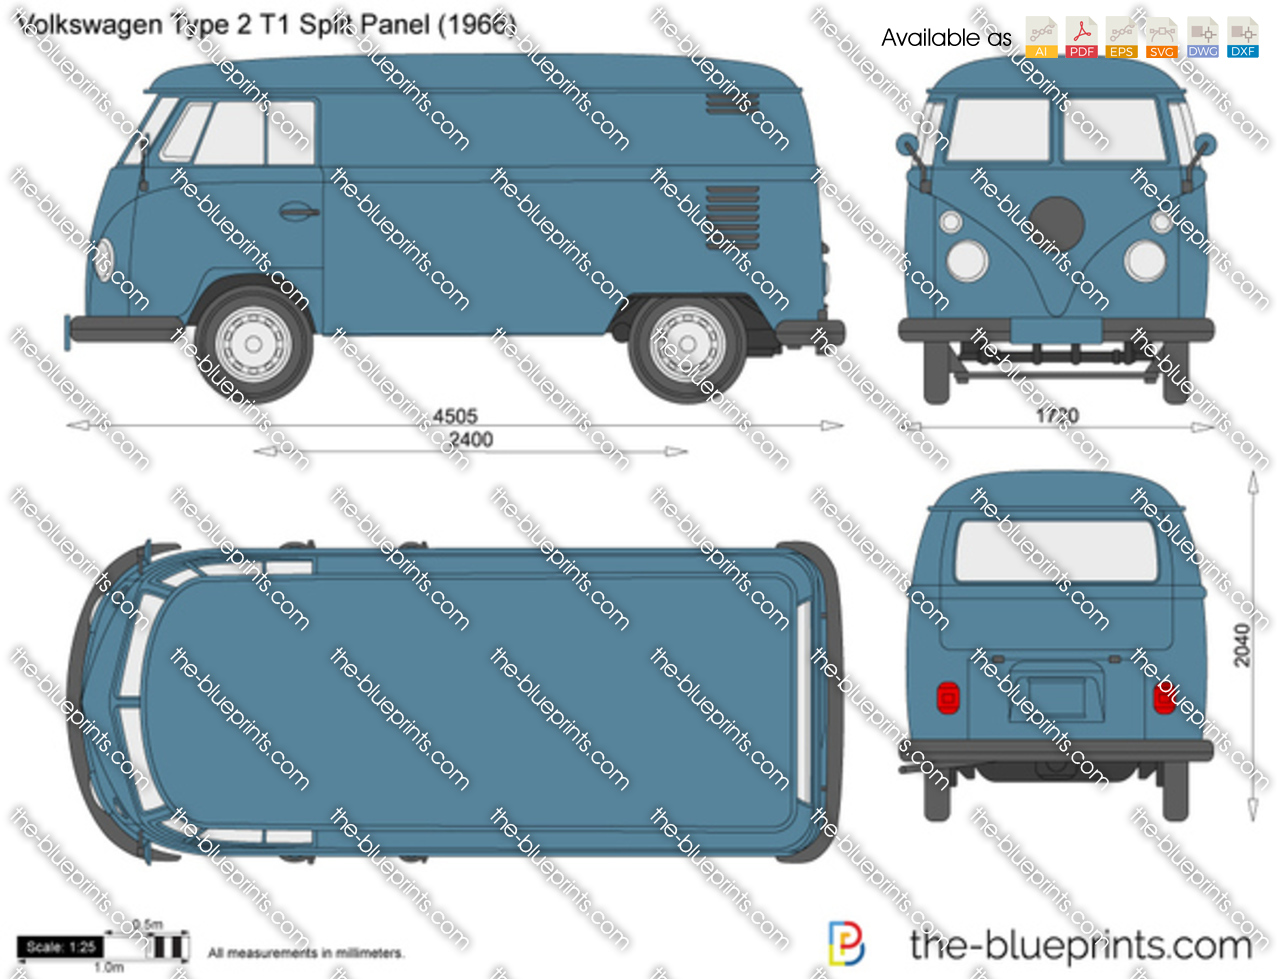 Volkswagen Type 2 T1 Split Panel 1955